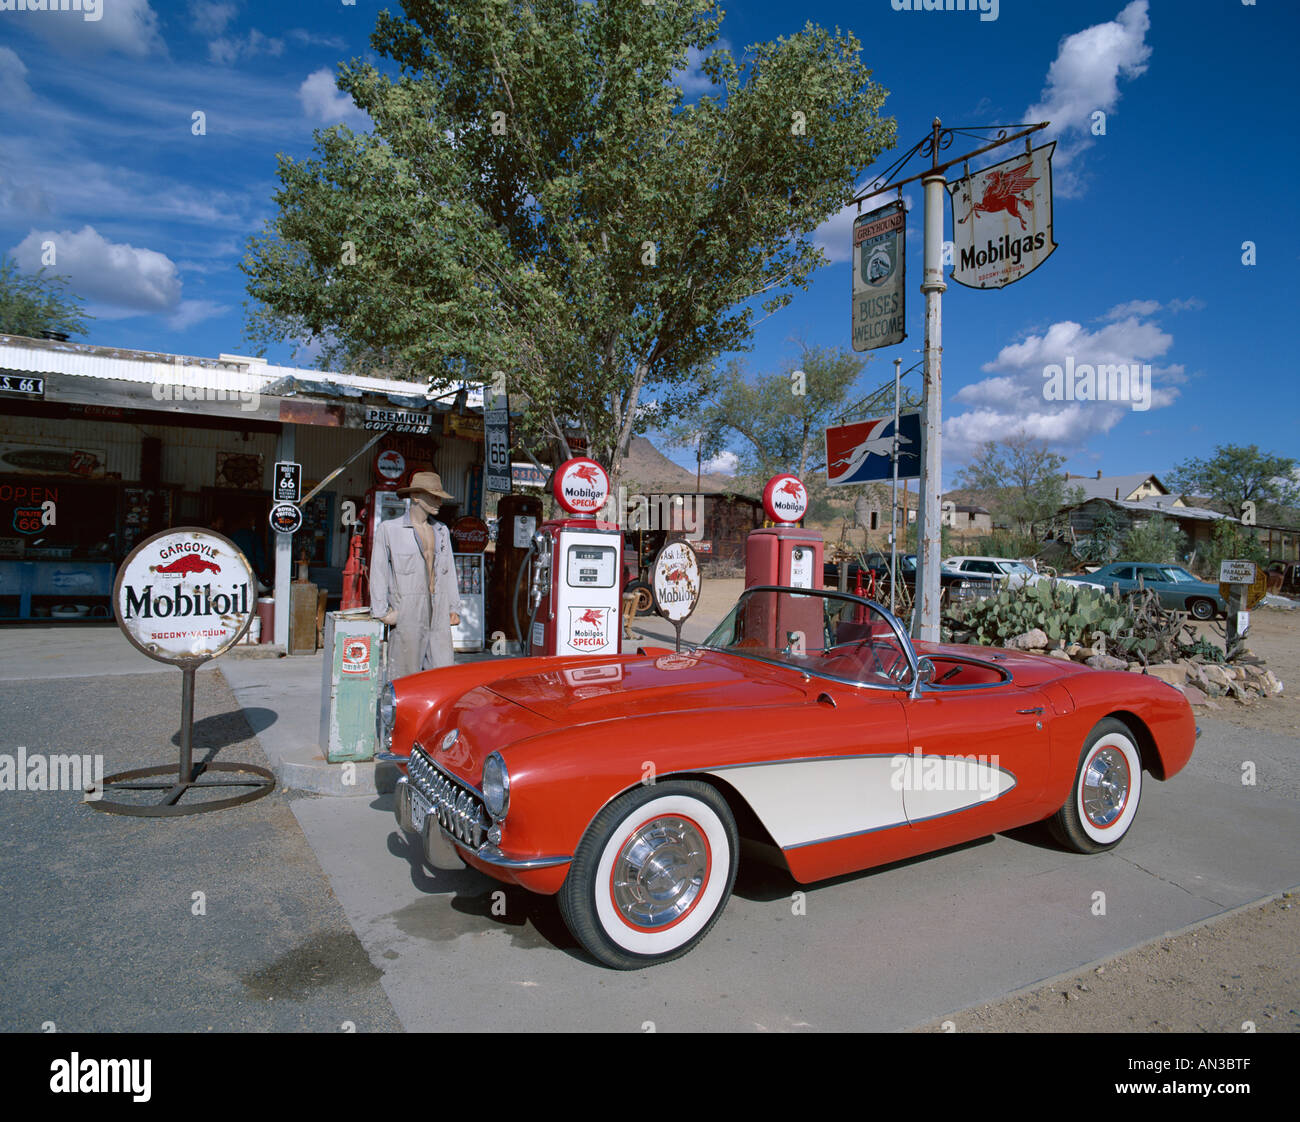 Photo route 66 gas station with red chevrolet corvette 1957 car